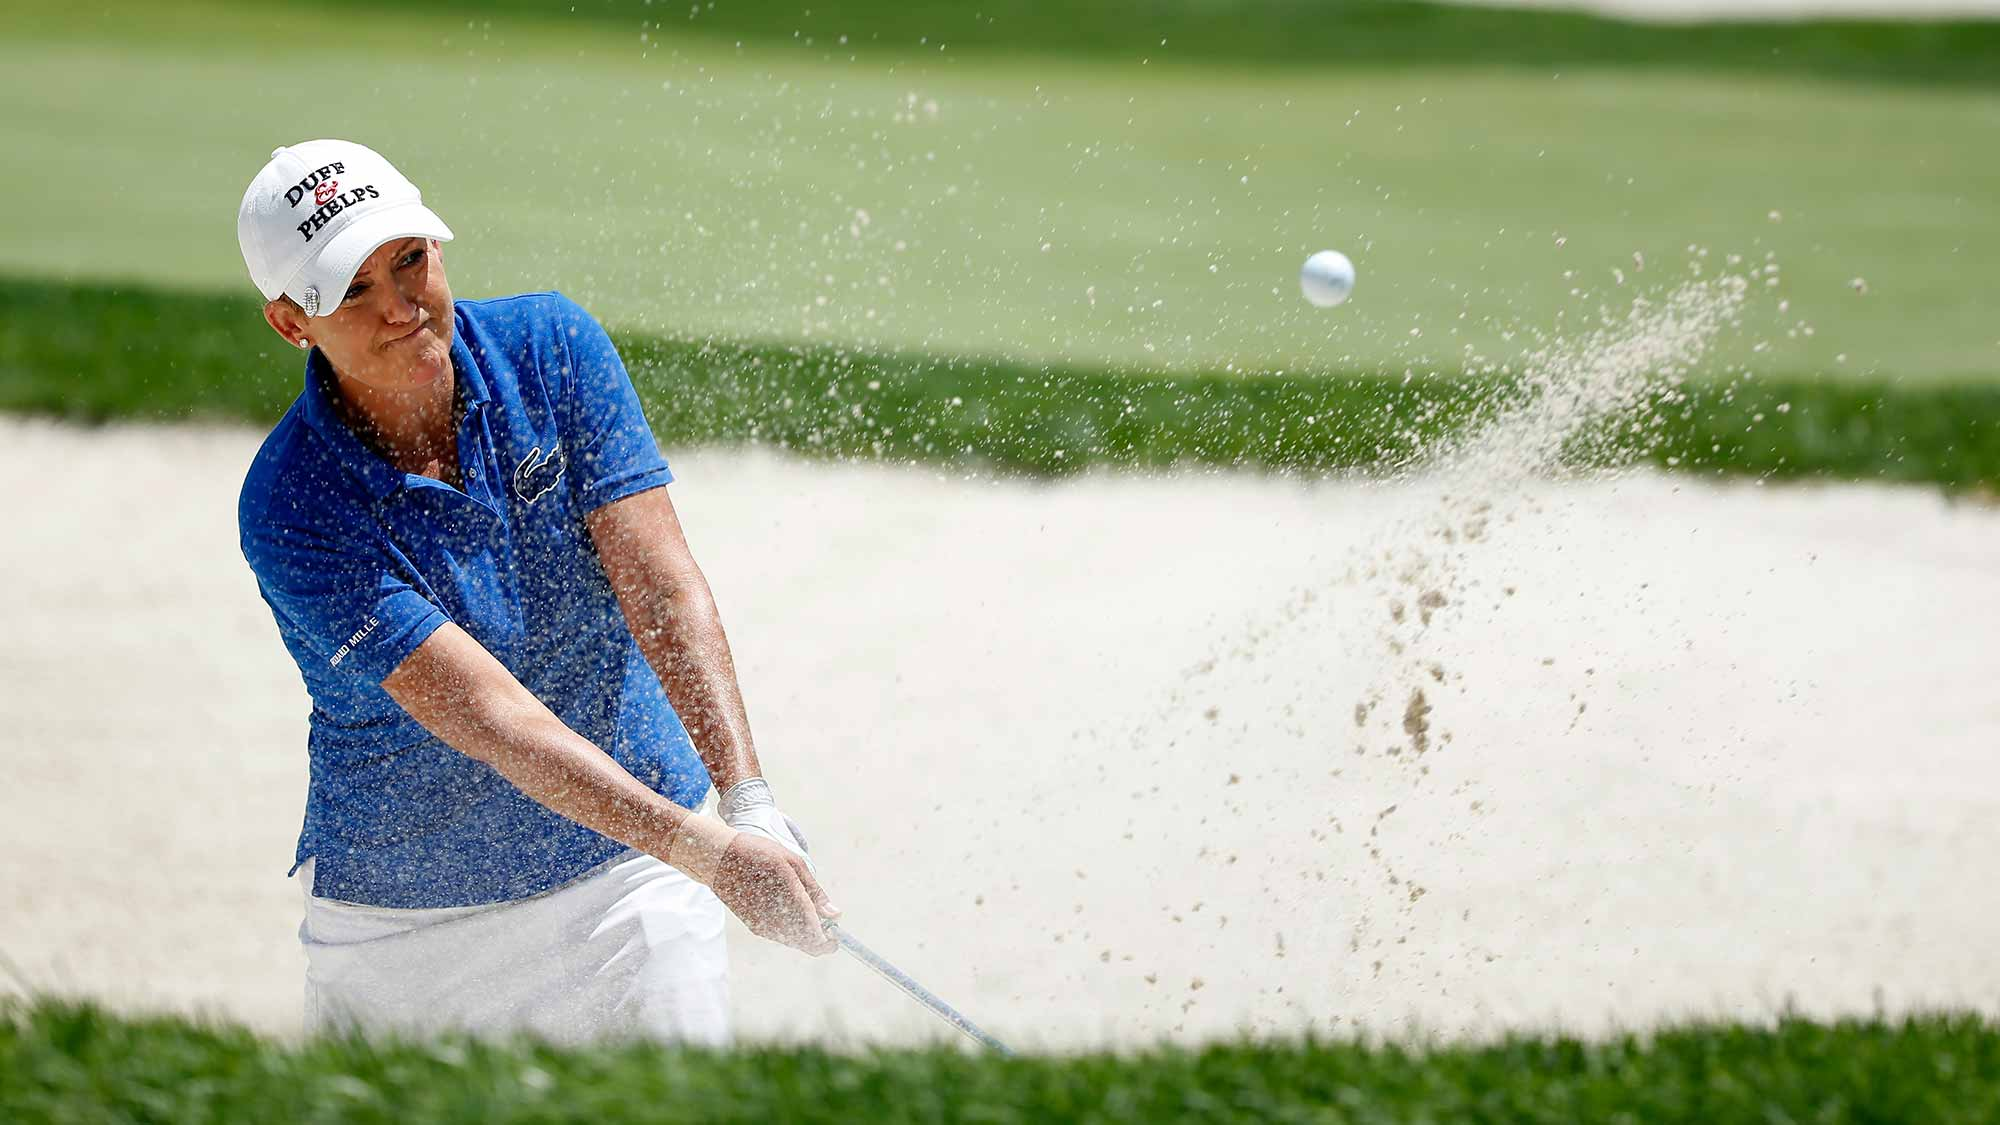 Cristie Kerr of the United States hits a bunker shot on the 16th hole during the second round of the U.S. Women's Open at Lancaster Country Club